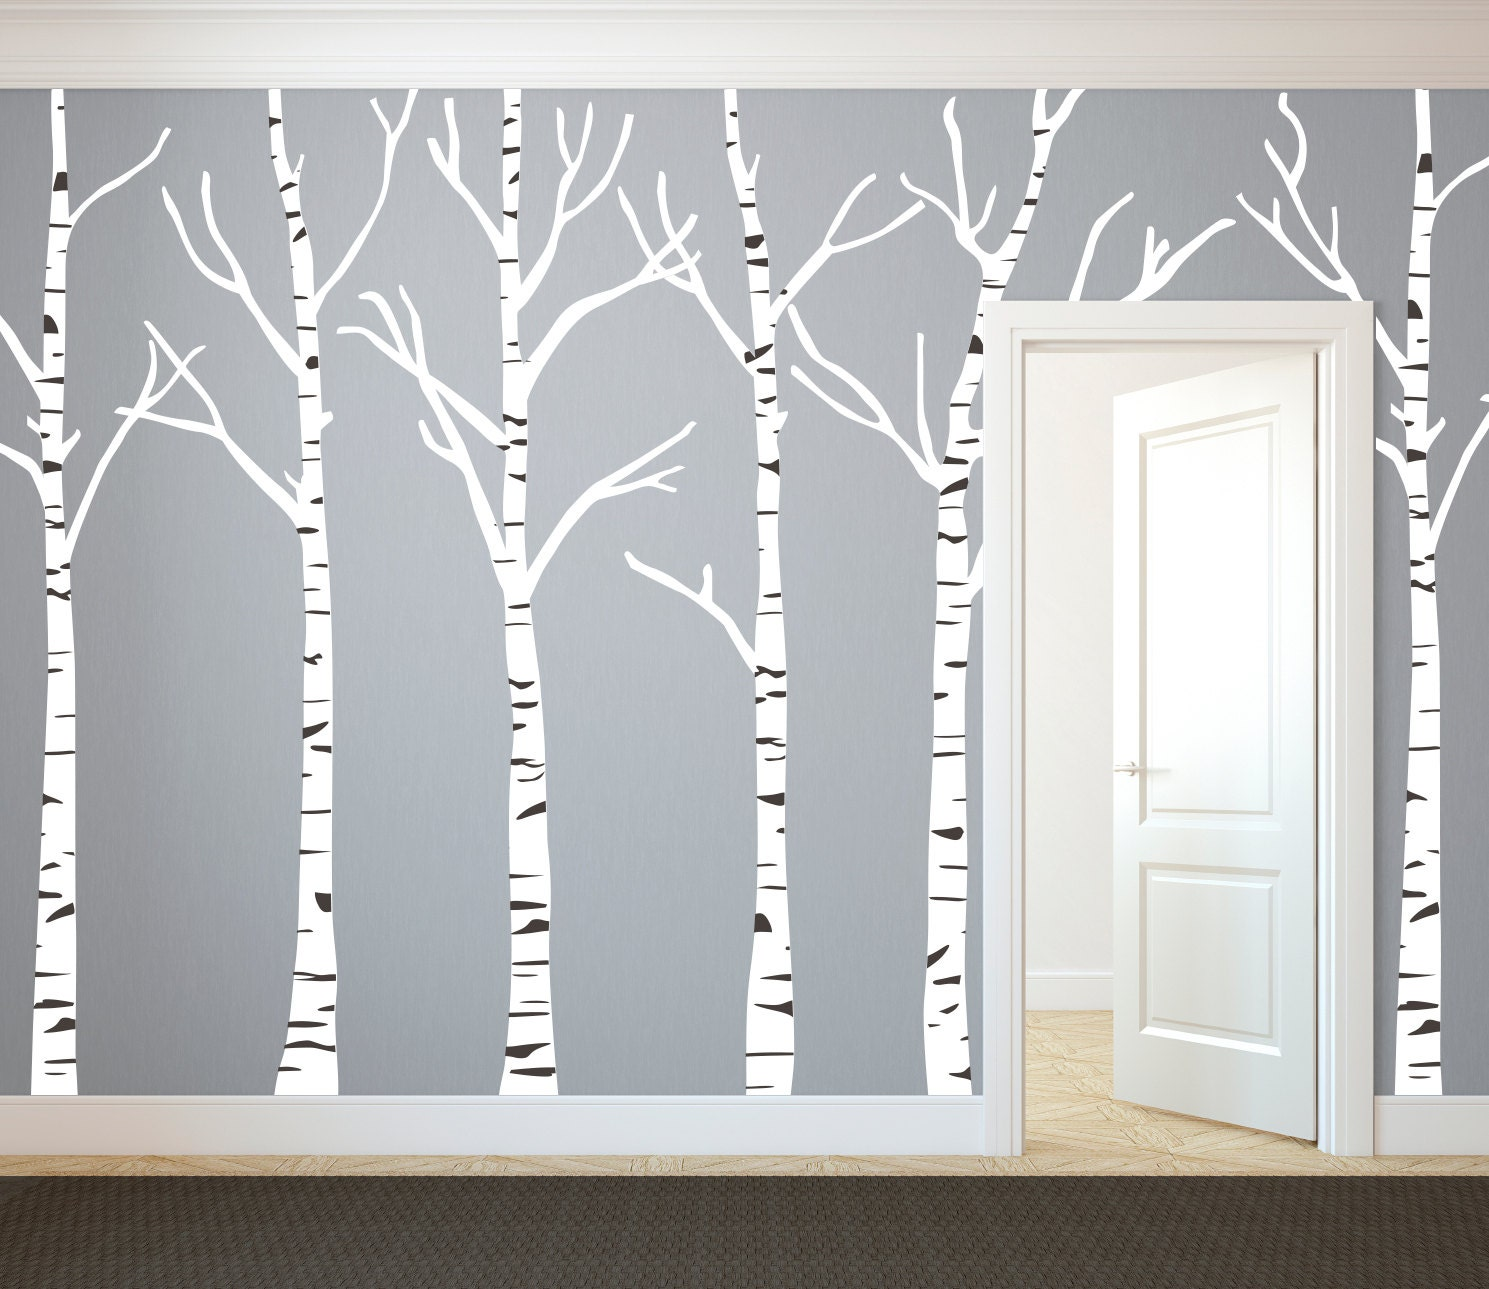 Birch Trees Silhouettes Forest Wall Decal Custom Vinyl Art